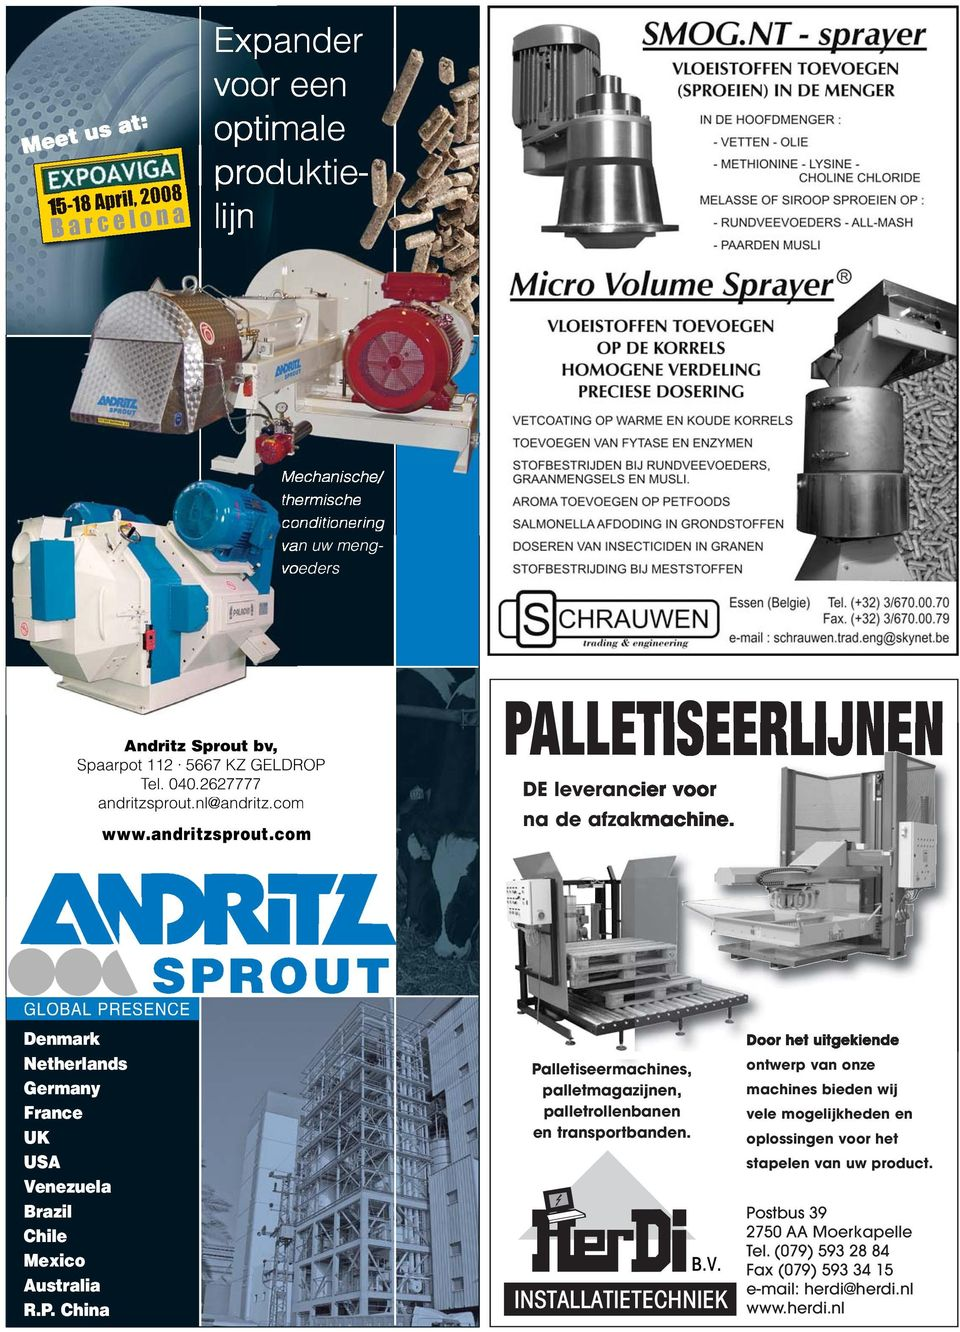 GLOBAL PRESENCE Denmark Netherlands Germany France UK USA Venezuela Brazil Chile Mexico Australia R.P.. China Palletiseermachines, palletmagazijnen, palletrollenbanen en transportbanden.